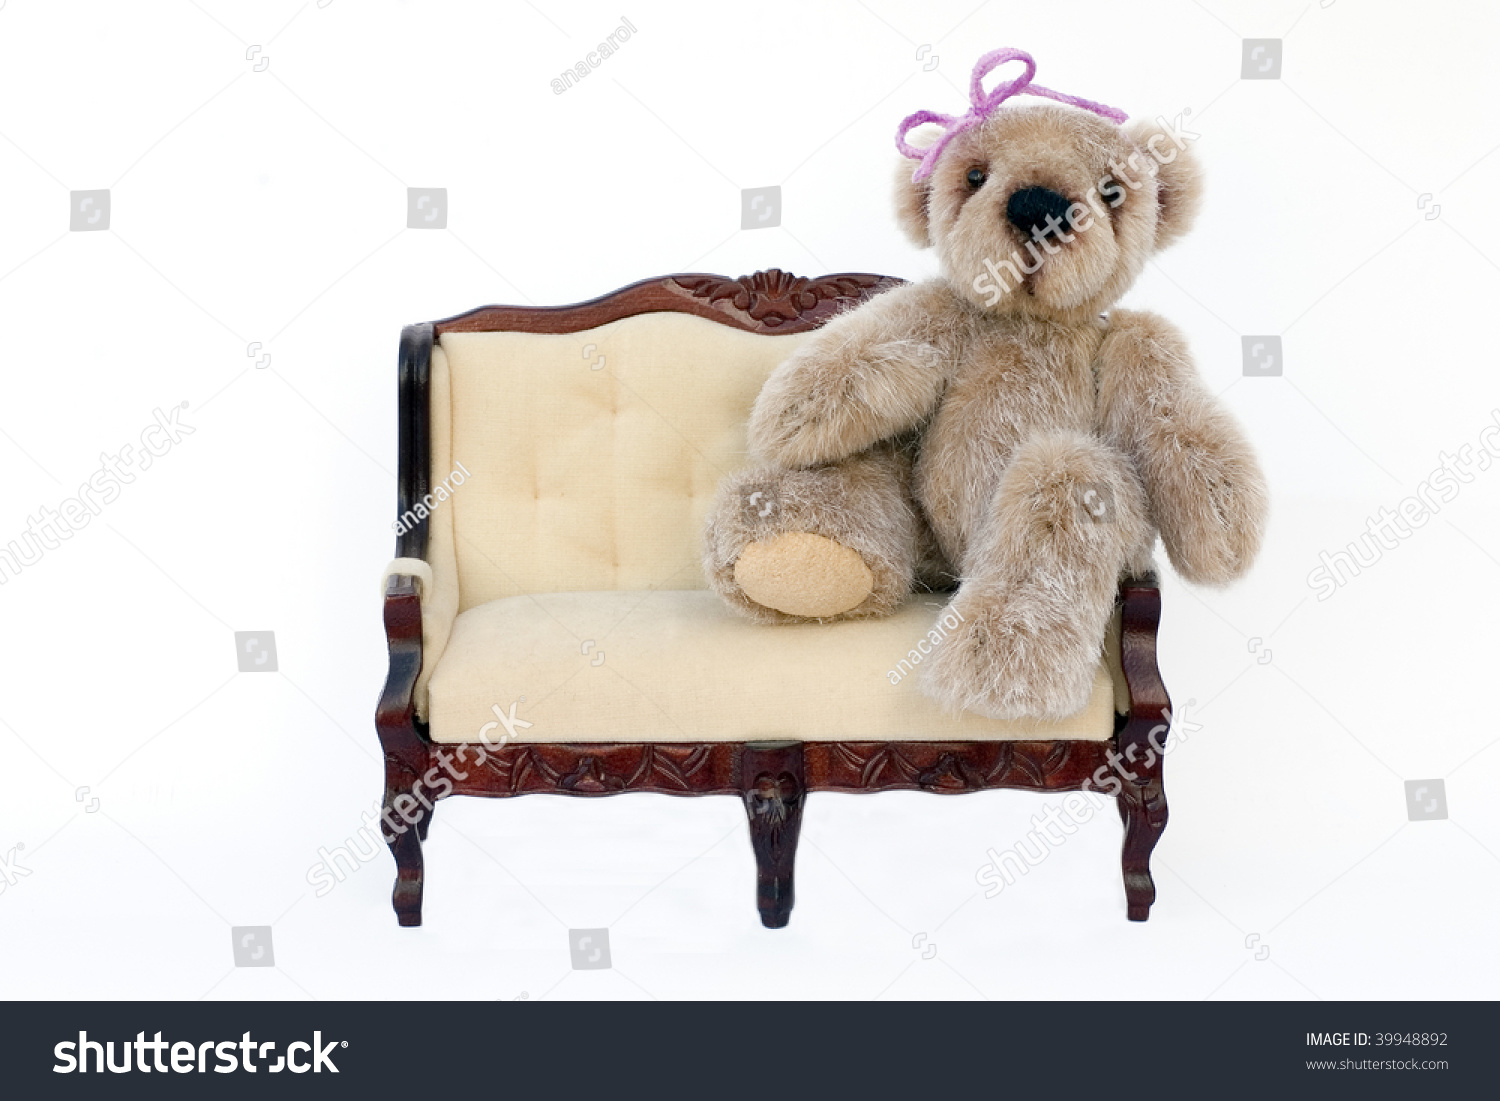 Teddy Bear On Sofa Stock Photo 39948892 Shutterstock